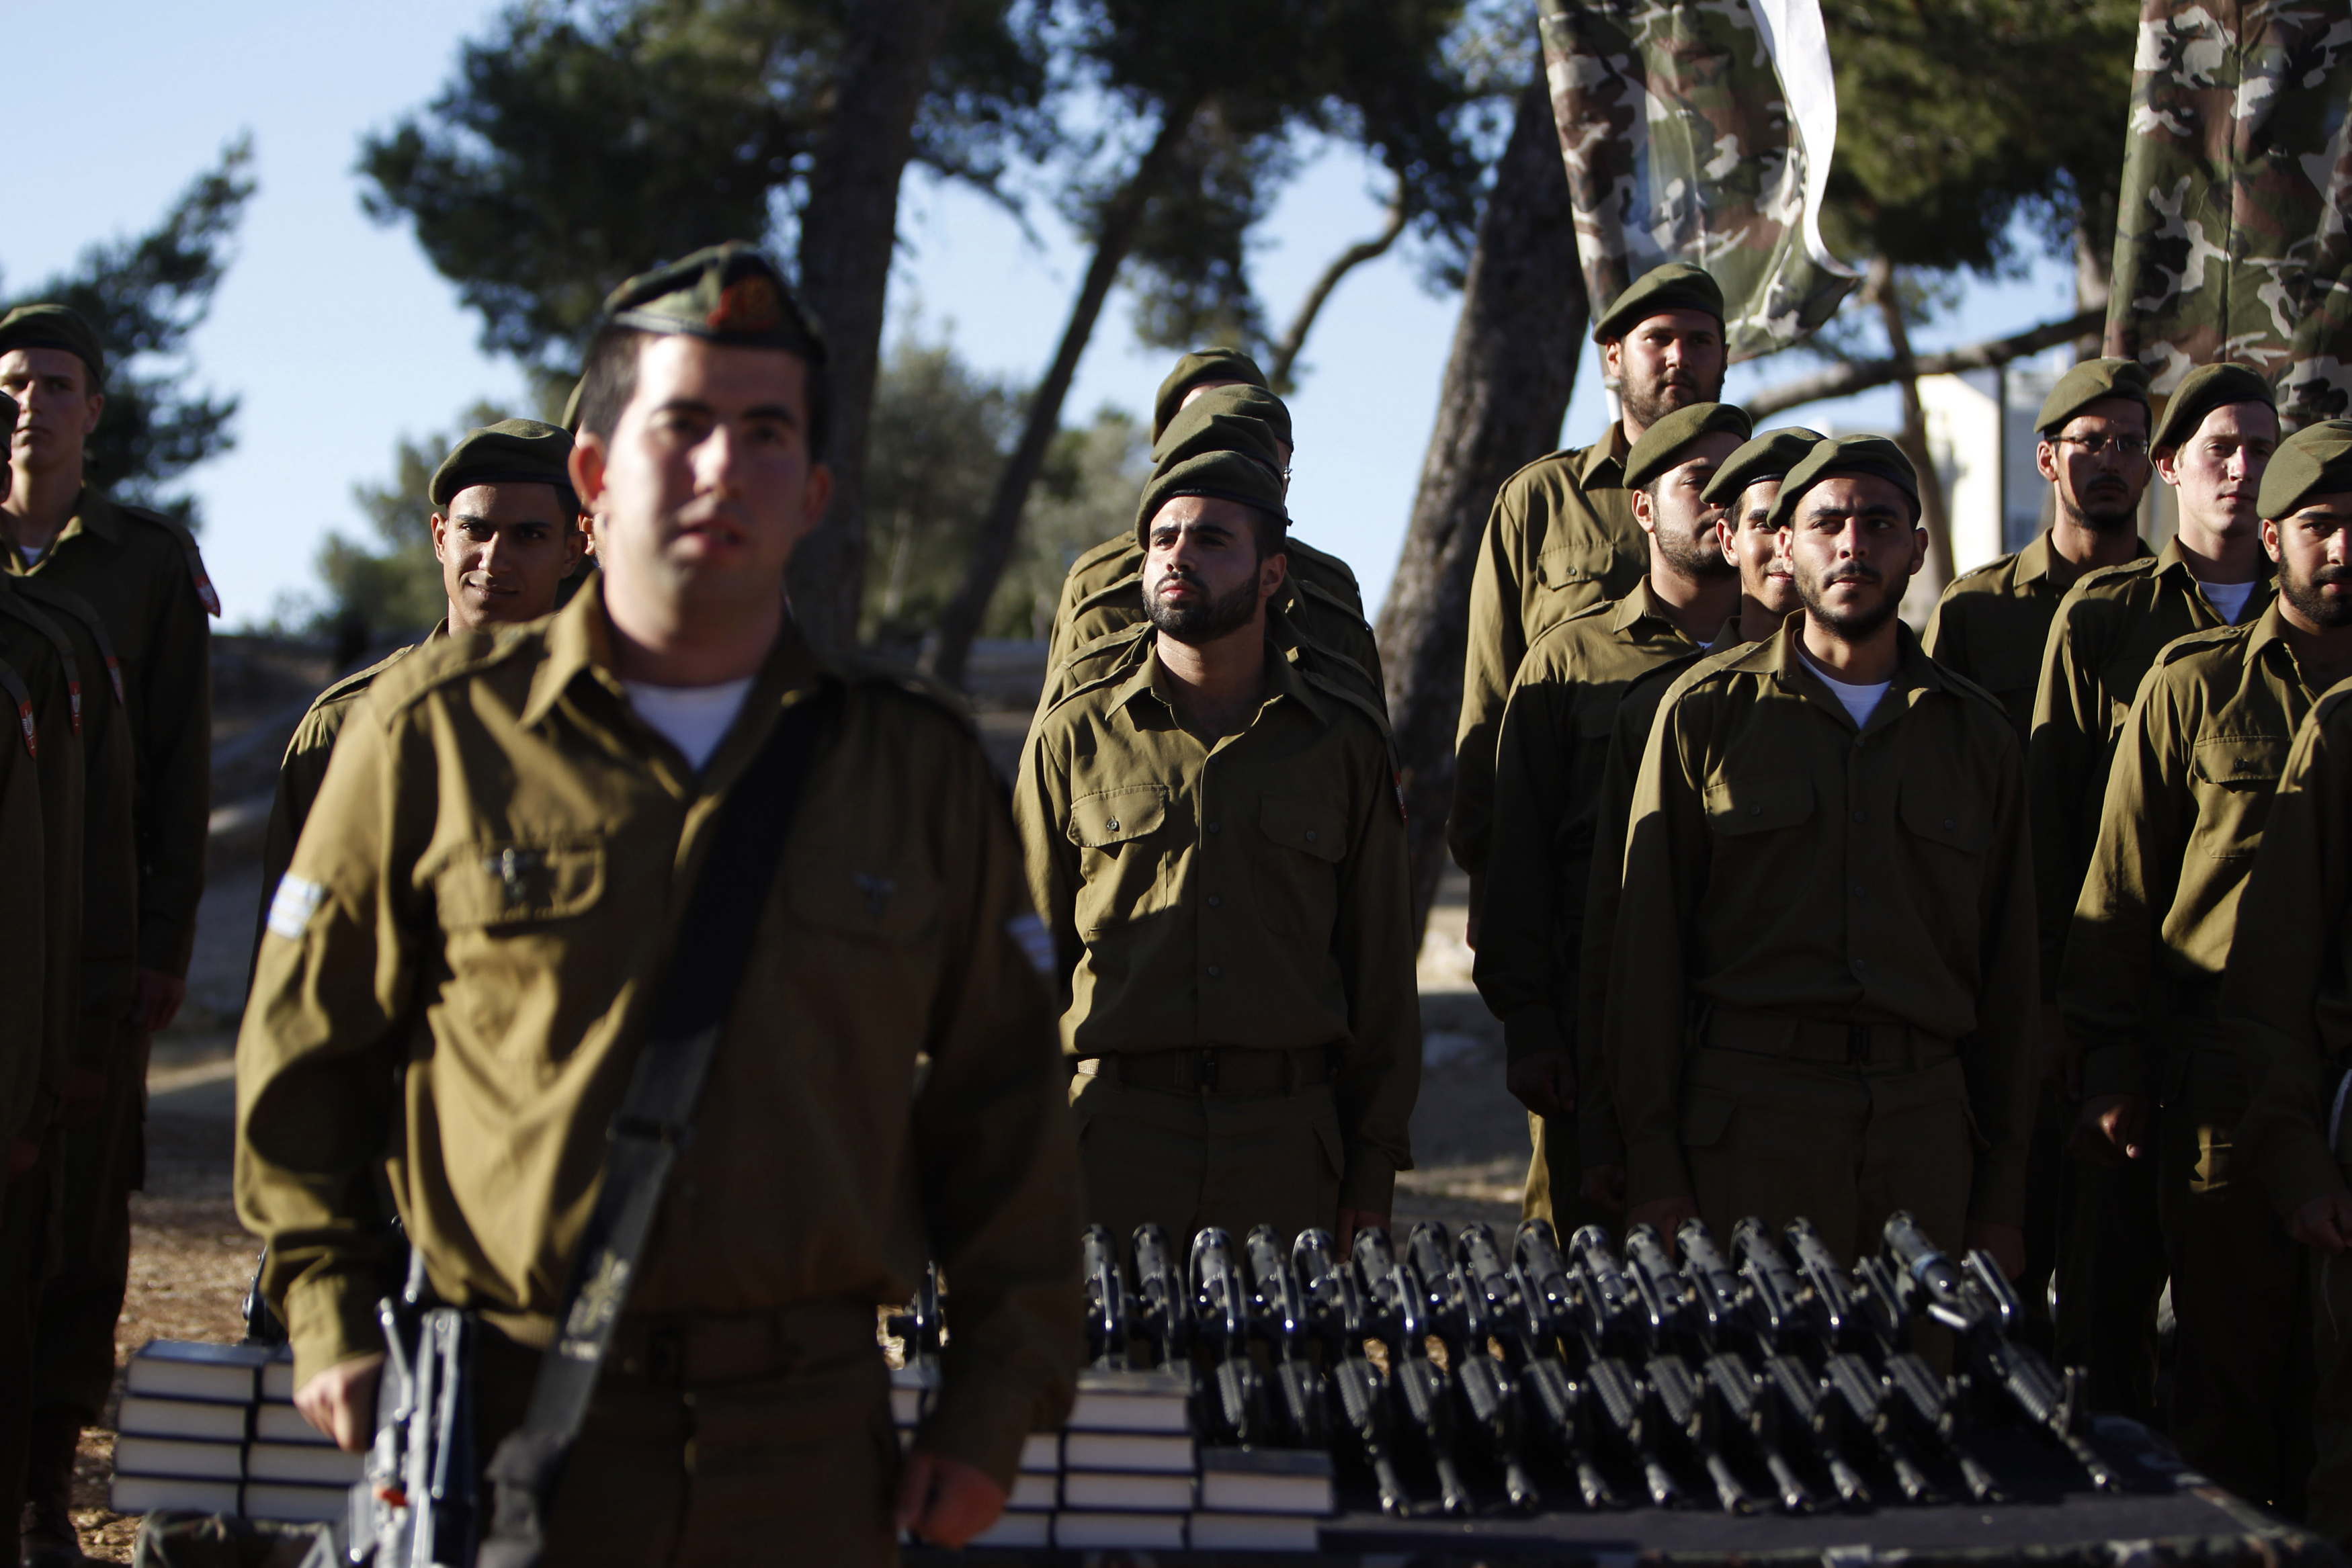 Israeli soldiers of the Ultra-Orthodox brigade take part in a swearing-in ceremony in Jerusalem. (Ammar Awad/REUTERS)